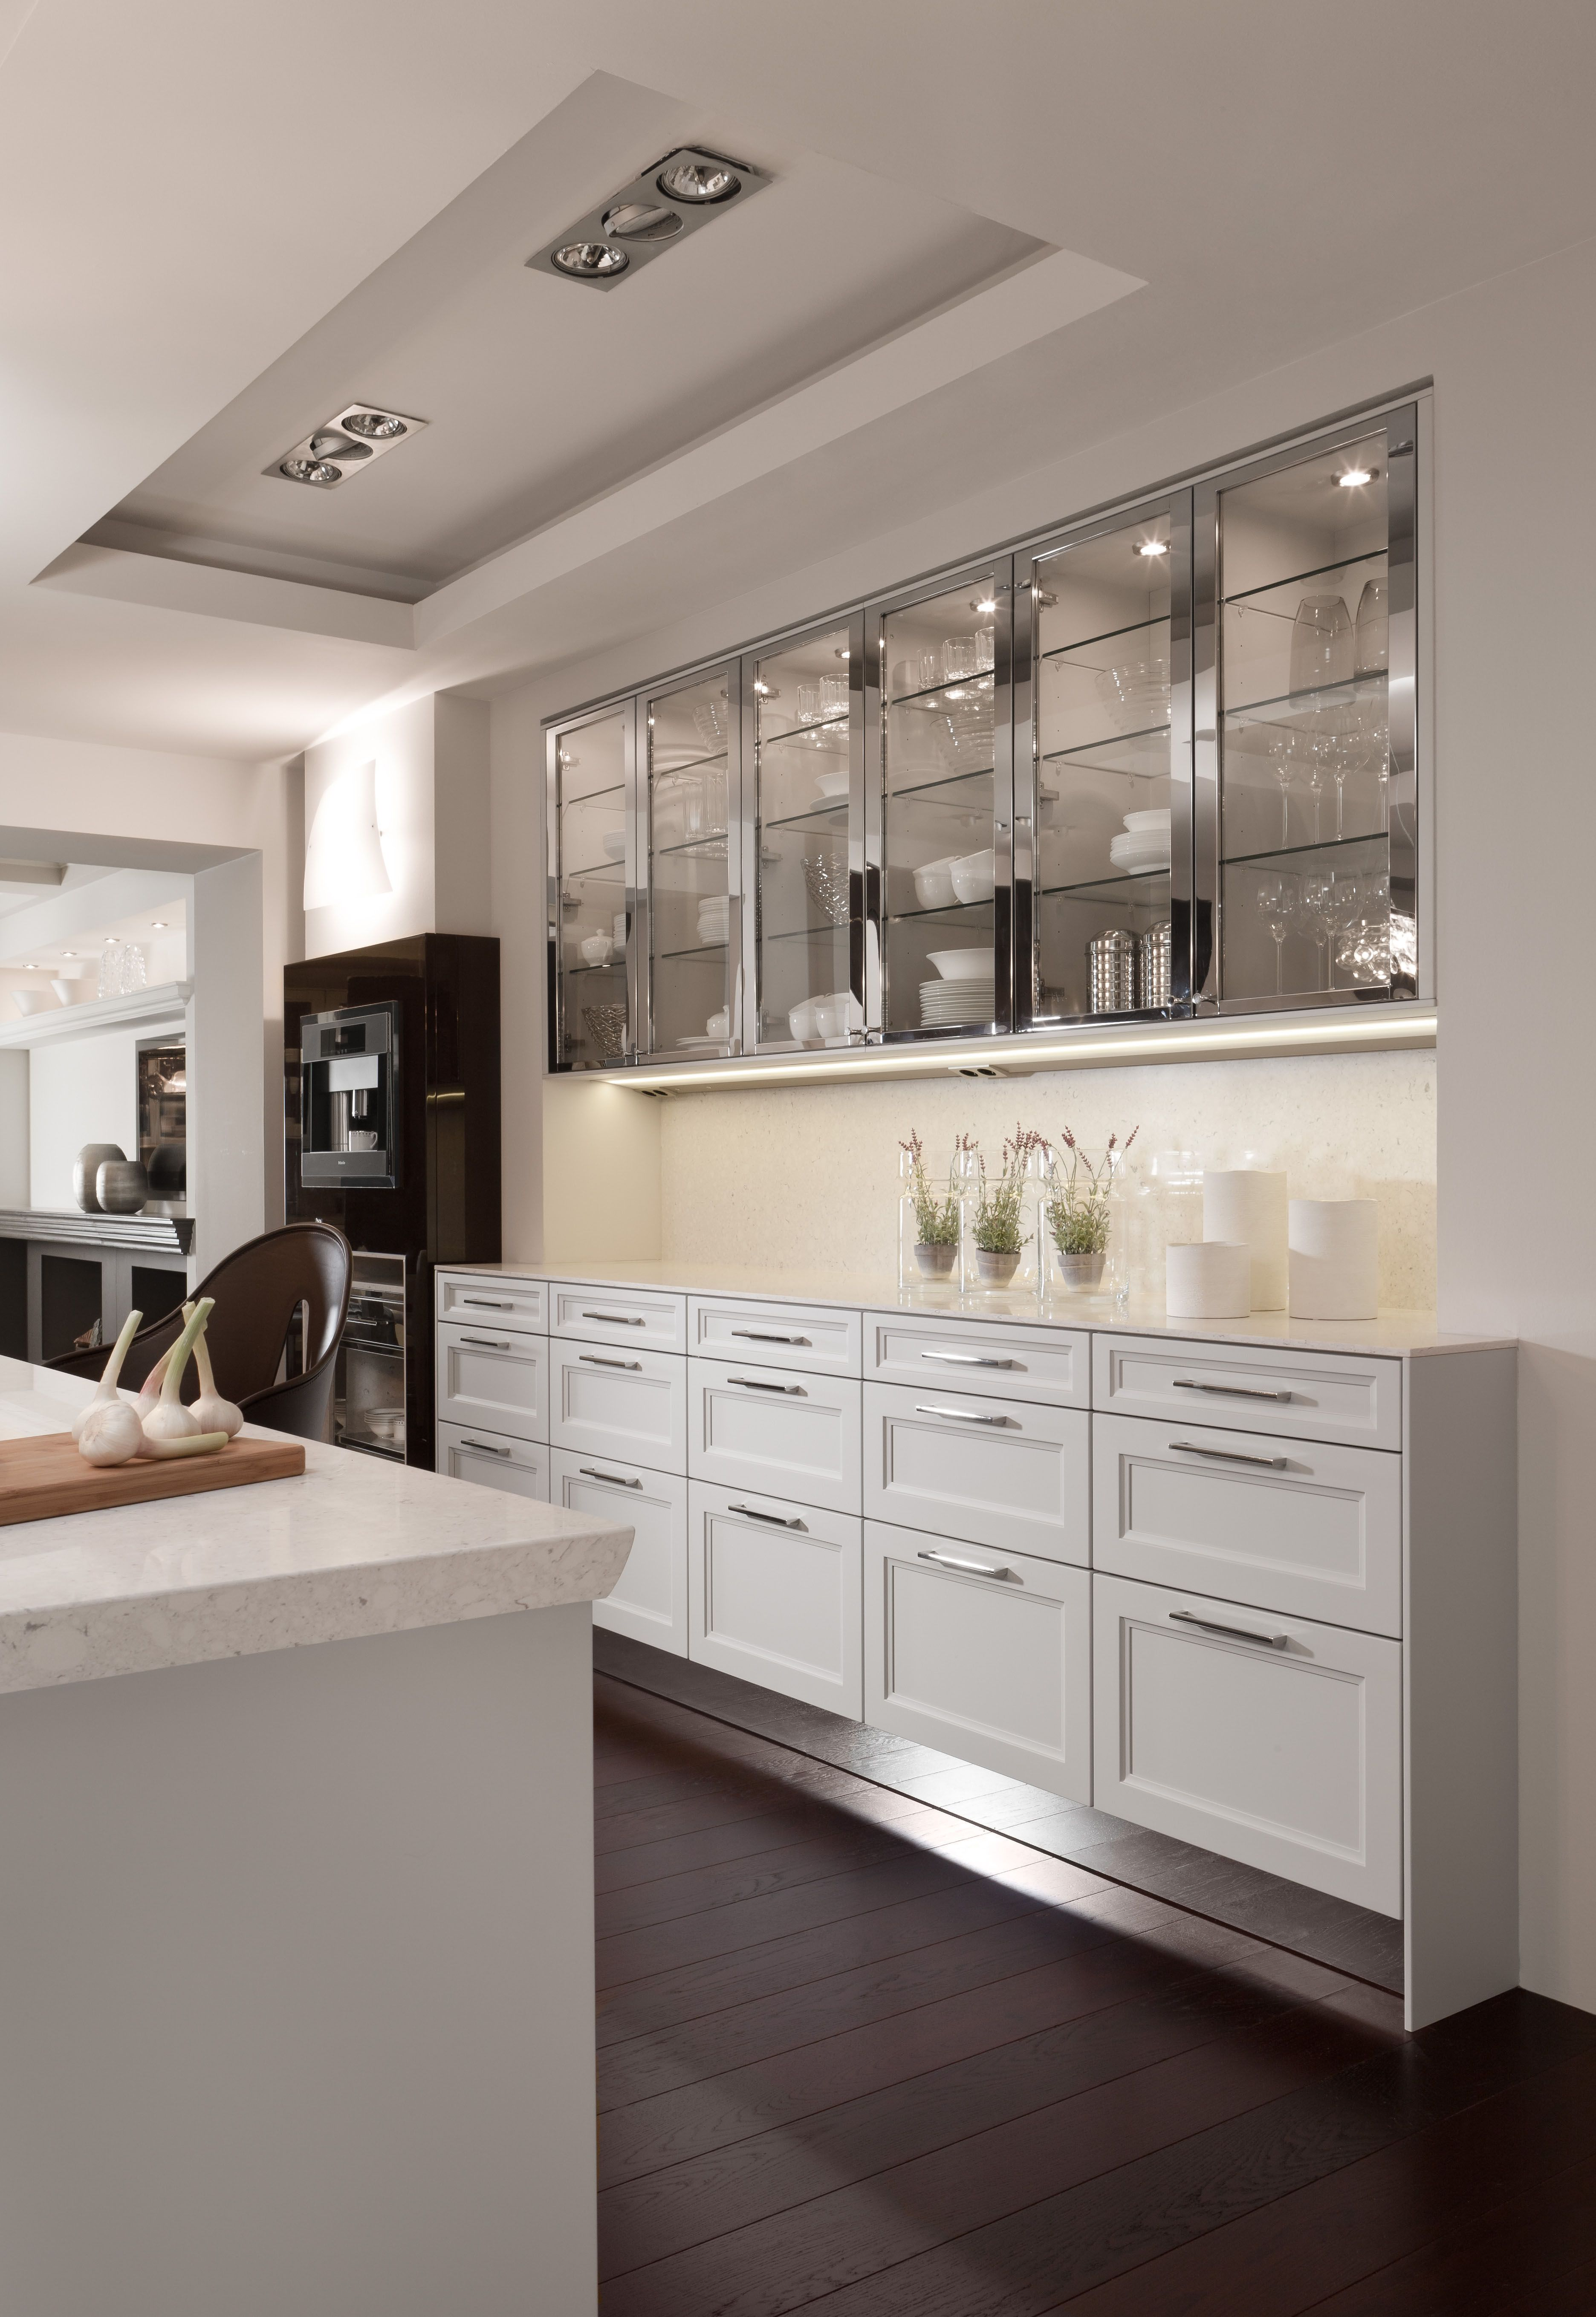 Exceptionnel De Giulio Kitchen Design: Chic, Sleek Kitchen Design With Glass Front  Stainless Steel Cabinet Doors And White